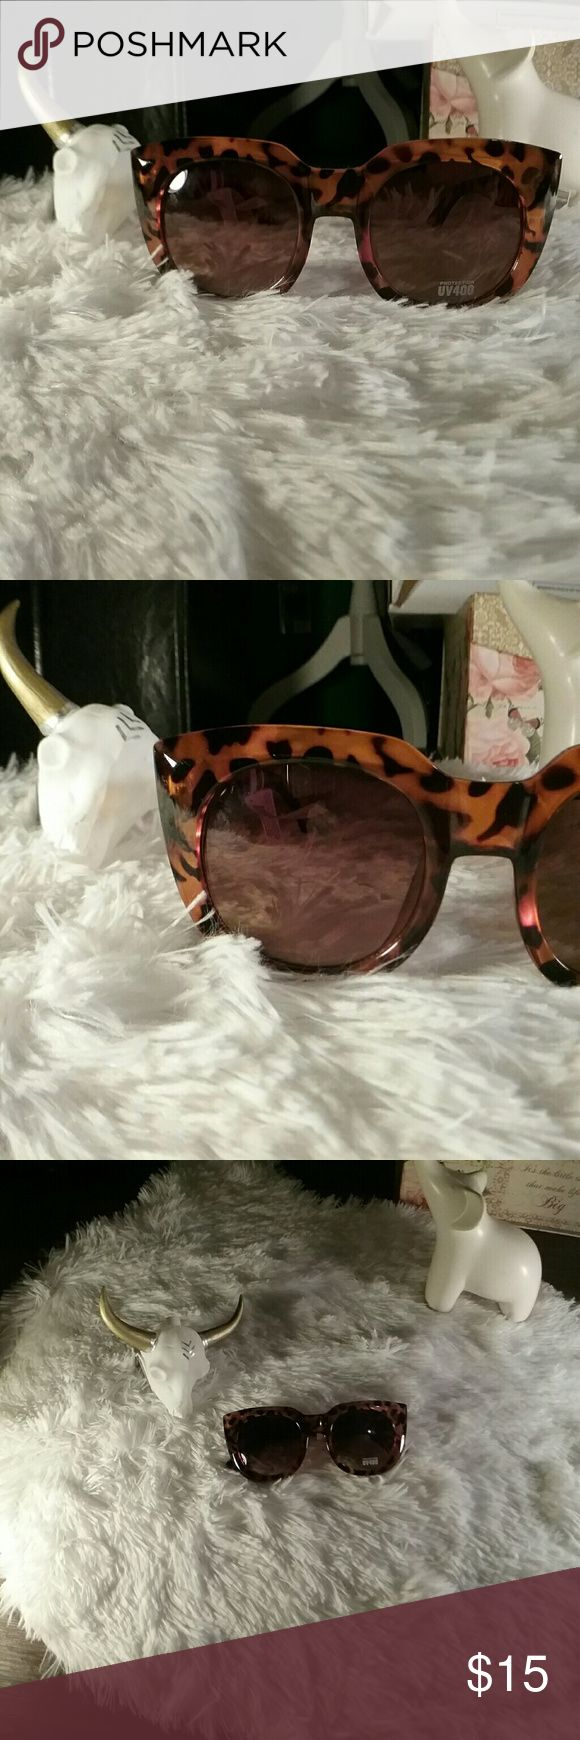 NEW Oversized Cheetah Cat-Eye Moviestar Sunglasses Gorgeous and super flattering!  Not a Poshmark member yet? Enter referral code WHTELEPHNTRVIVL while setting up your account and get $5 off your first purchase! Accessories Sunglasses